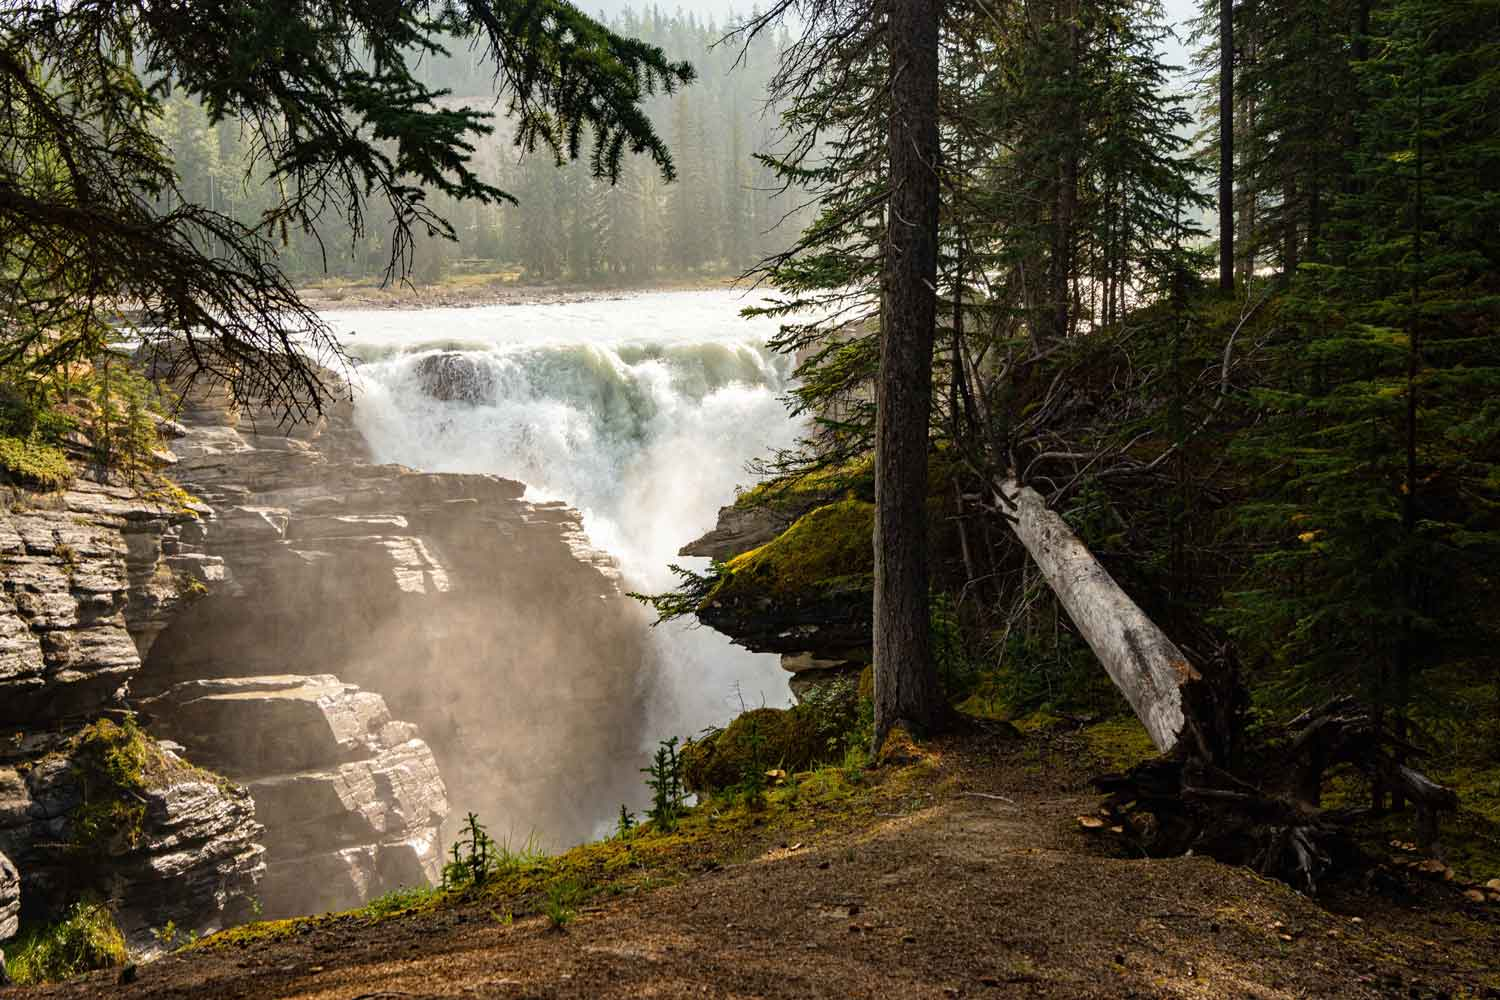 Athabasca Falls plummets over the rocks during summer in the Canadian Rockies